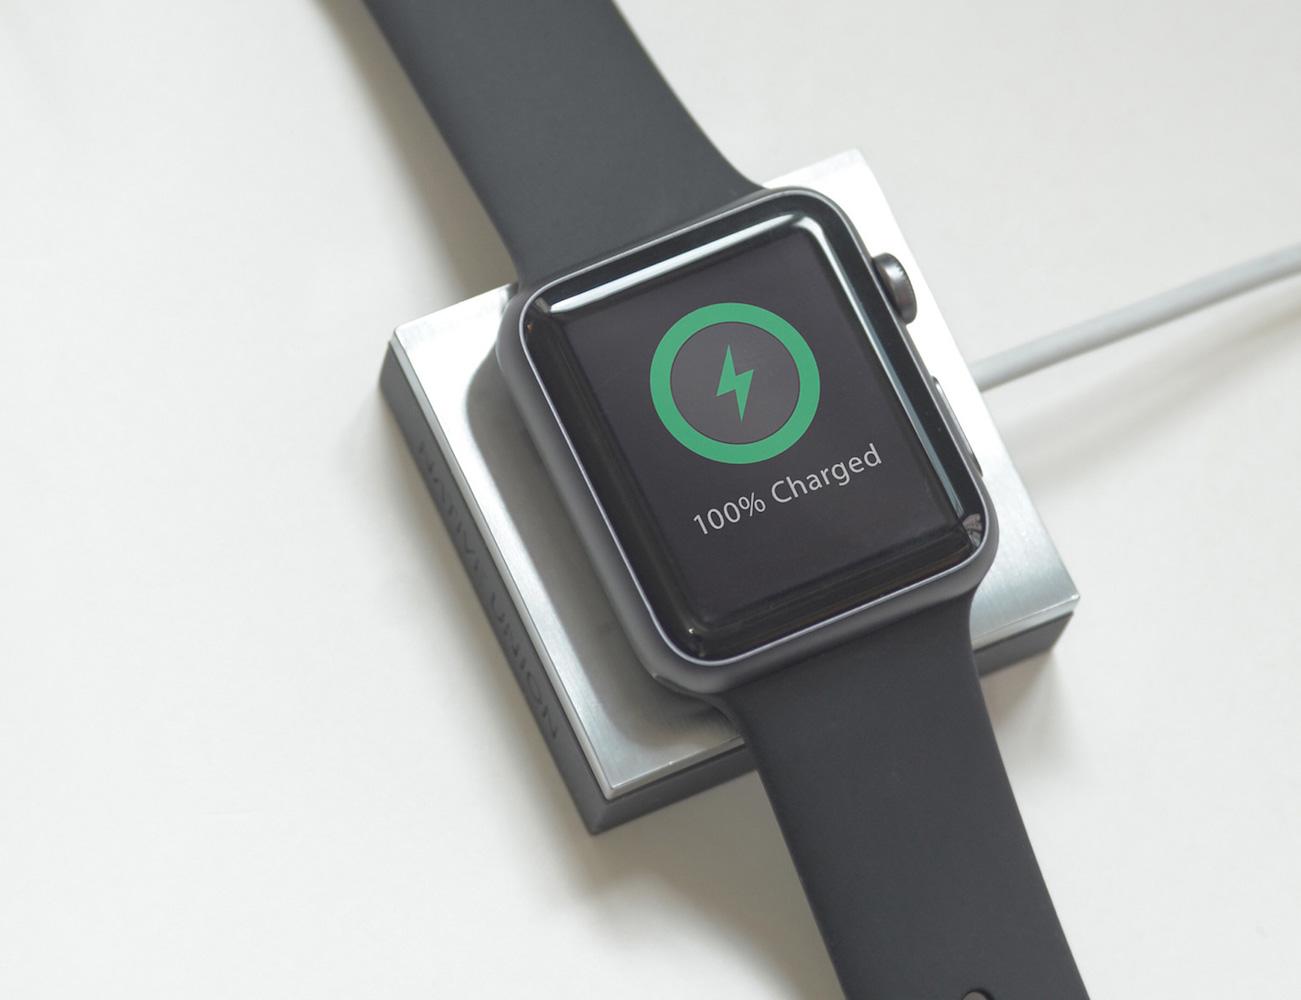 ANCHOR+%E2%80%93+Charging+Pad+For+Apple+Watch+By+Native+Union